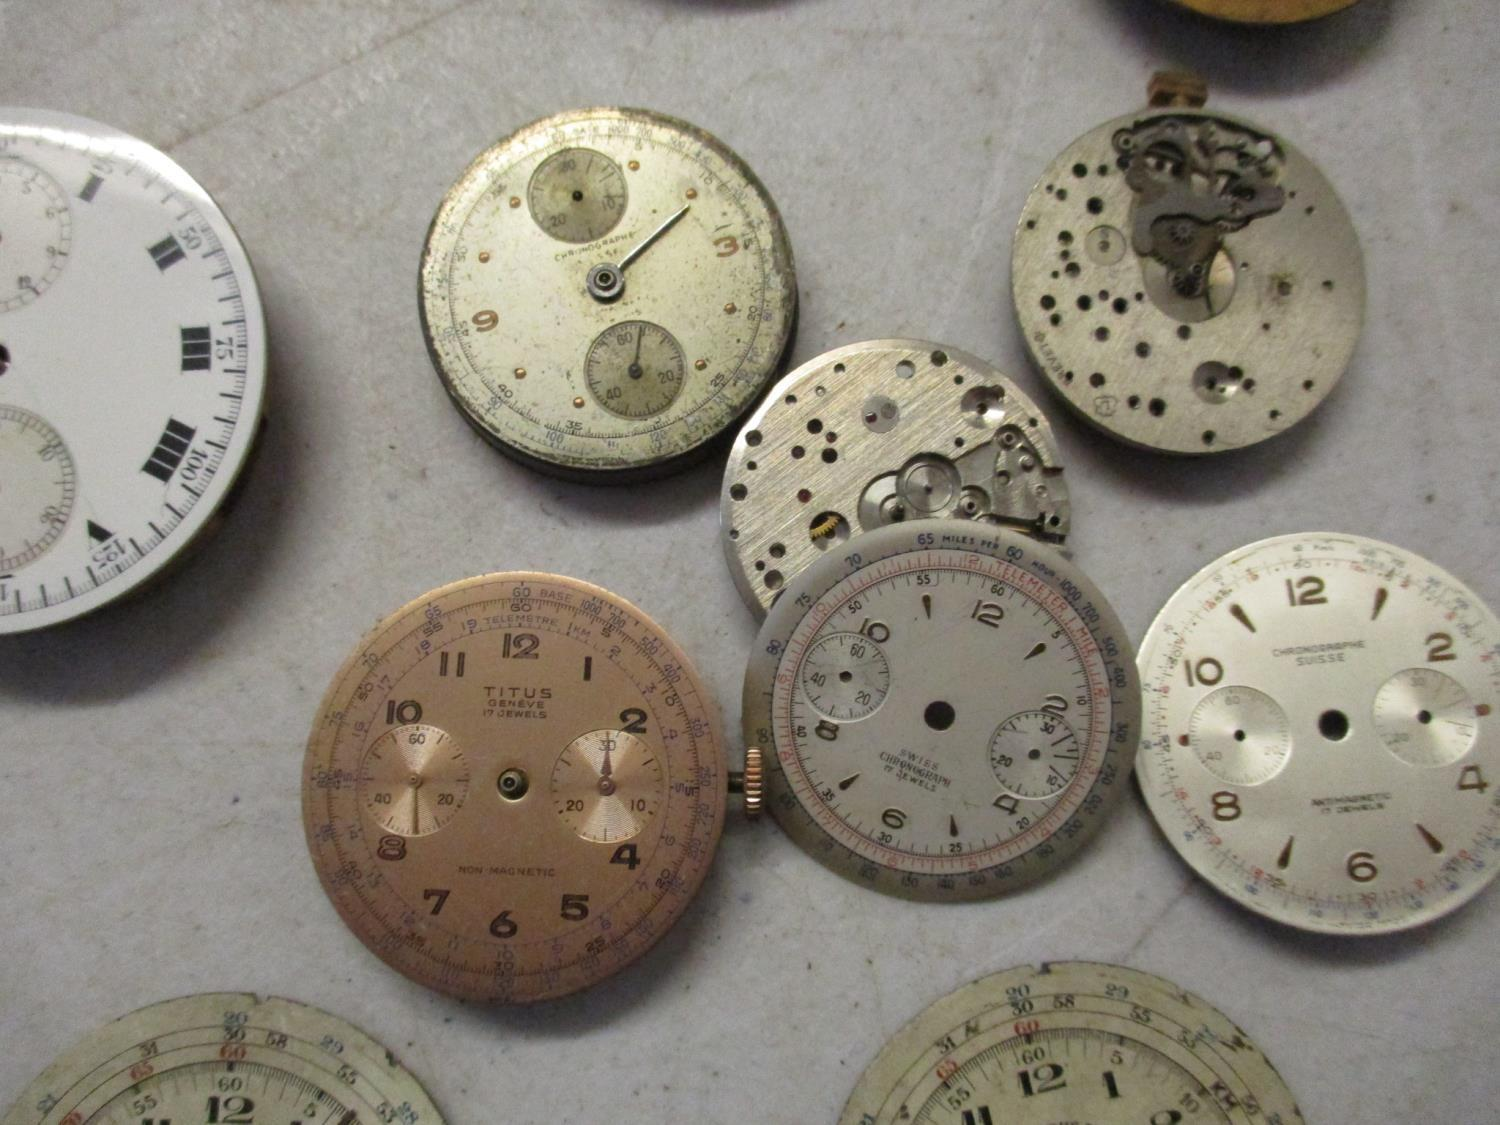 Chronograph pocket watch parts to include a Baume and Mercier A/F Location: Cabs - Image 5 of 5